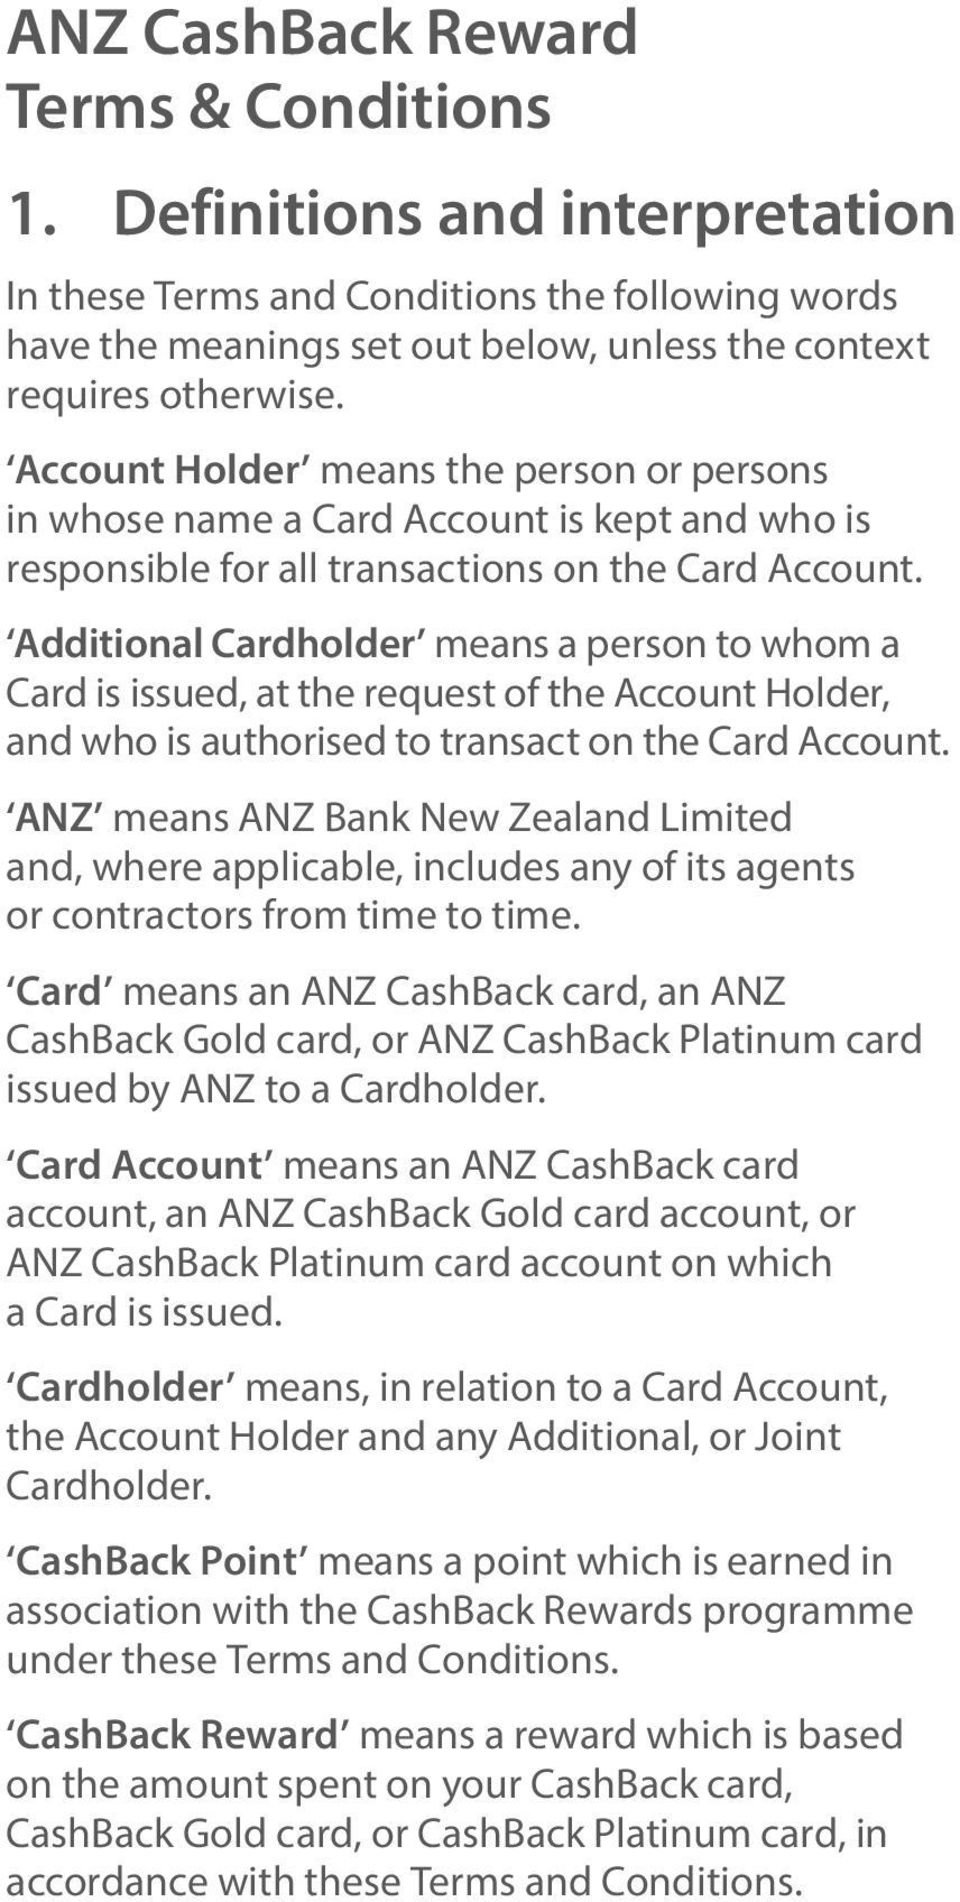 Additional Cardholder means a person to whom a Card is issued, at the request of the Account Holder, and who is authorised to transact on the Card Account.